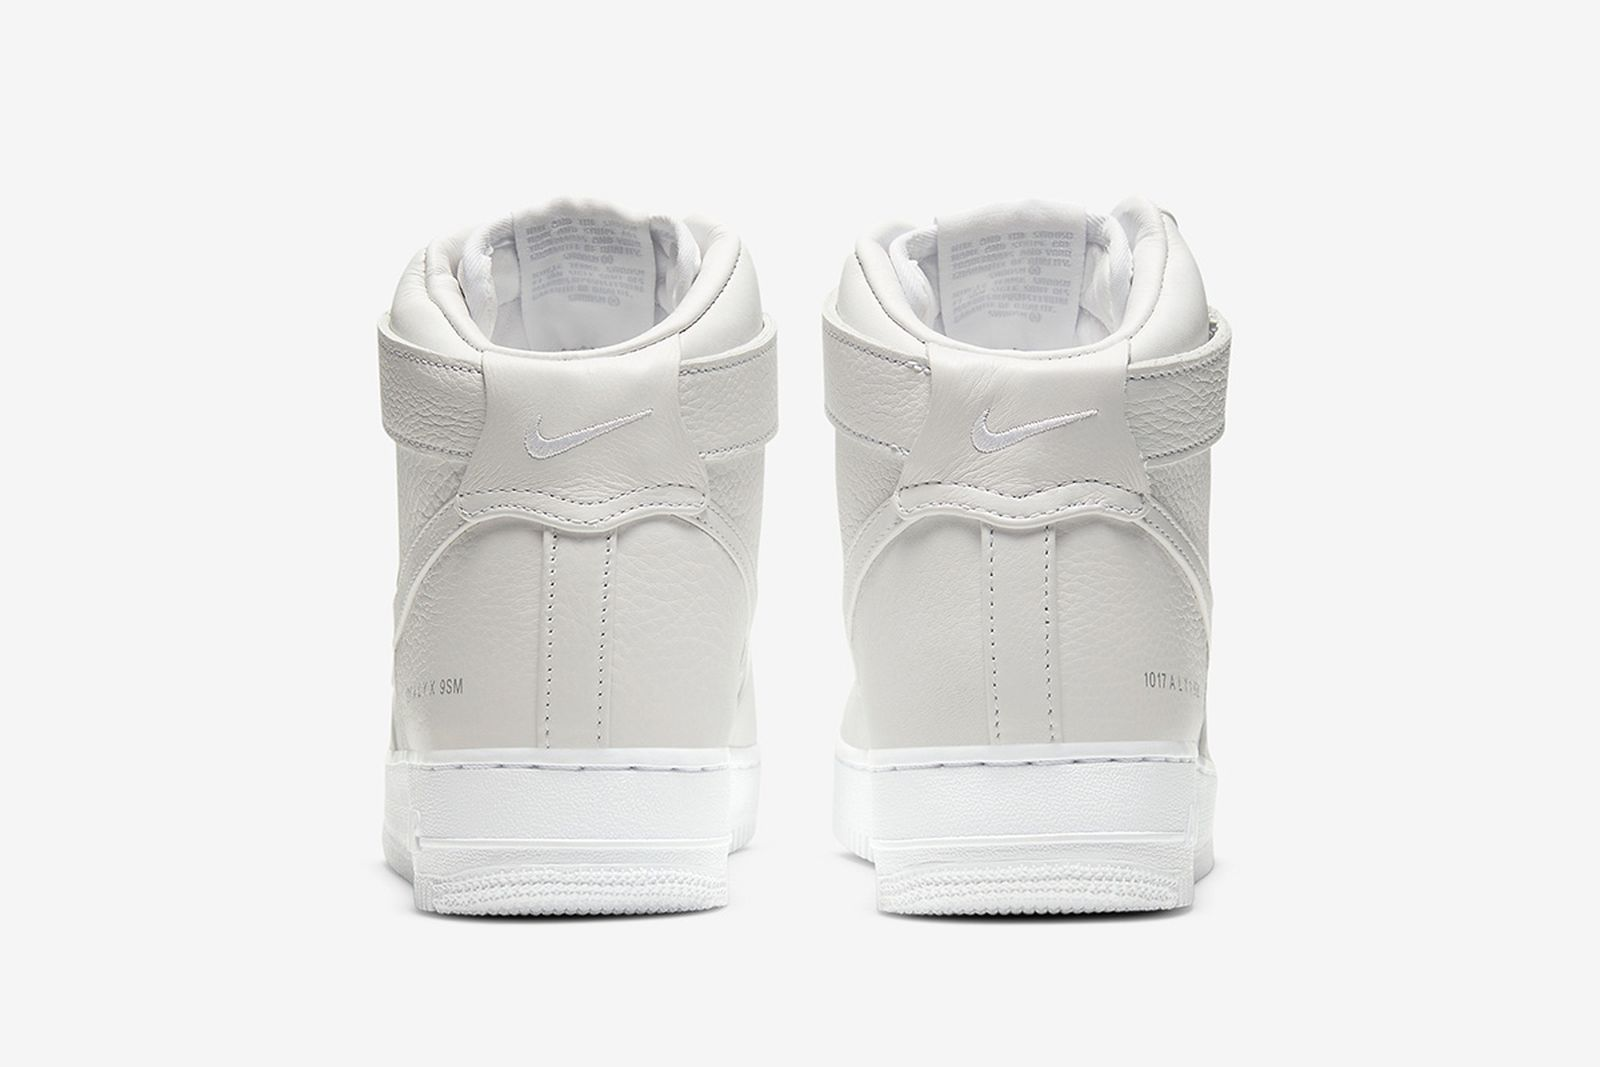 1017-alyx-9sm-nike-air-force-1-high-white-release-date-price-05